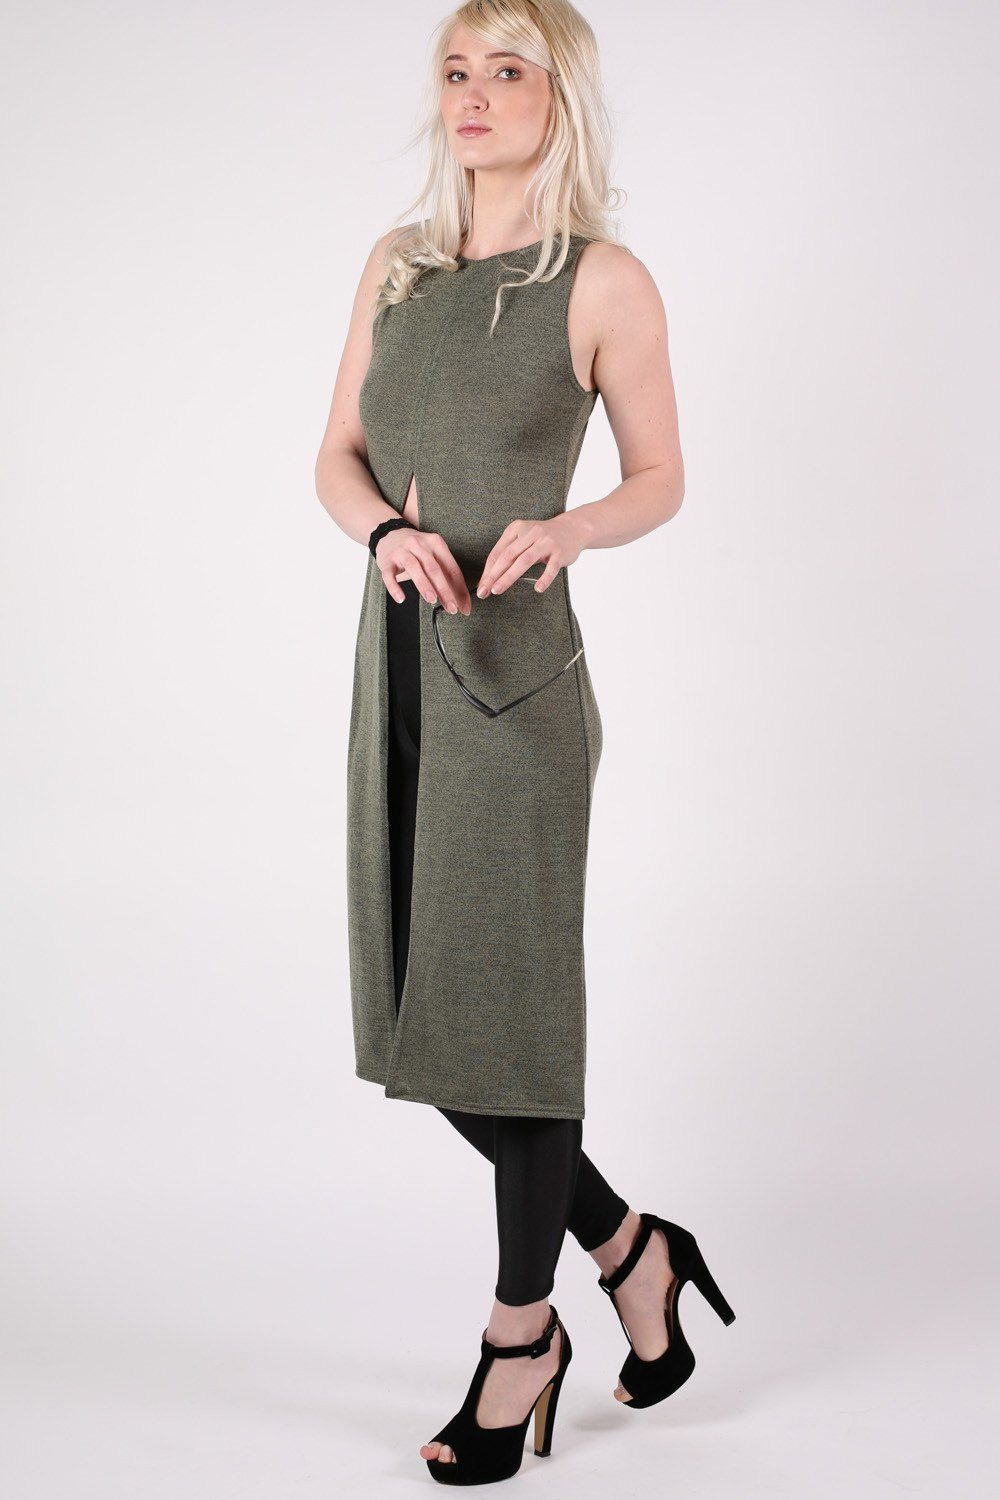 Long Sleeveless Split Front Knitted Tunic Top in Khaki Green 0